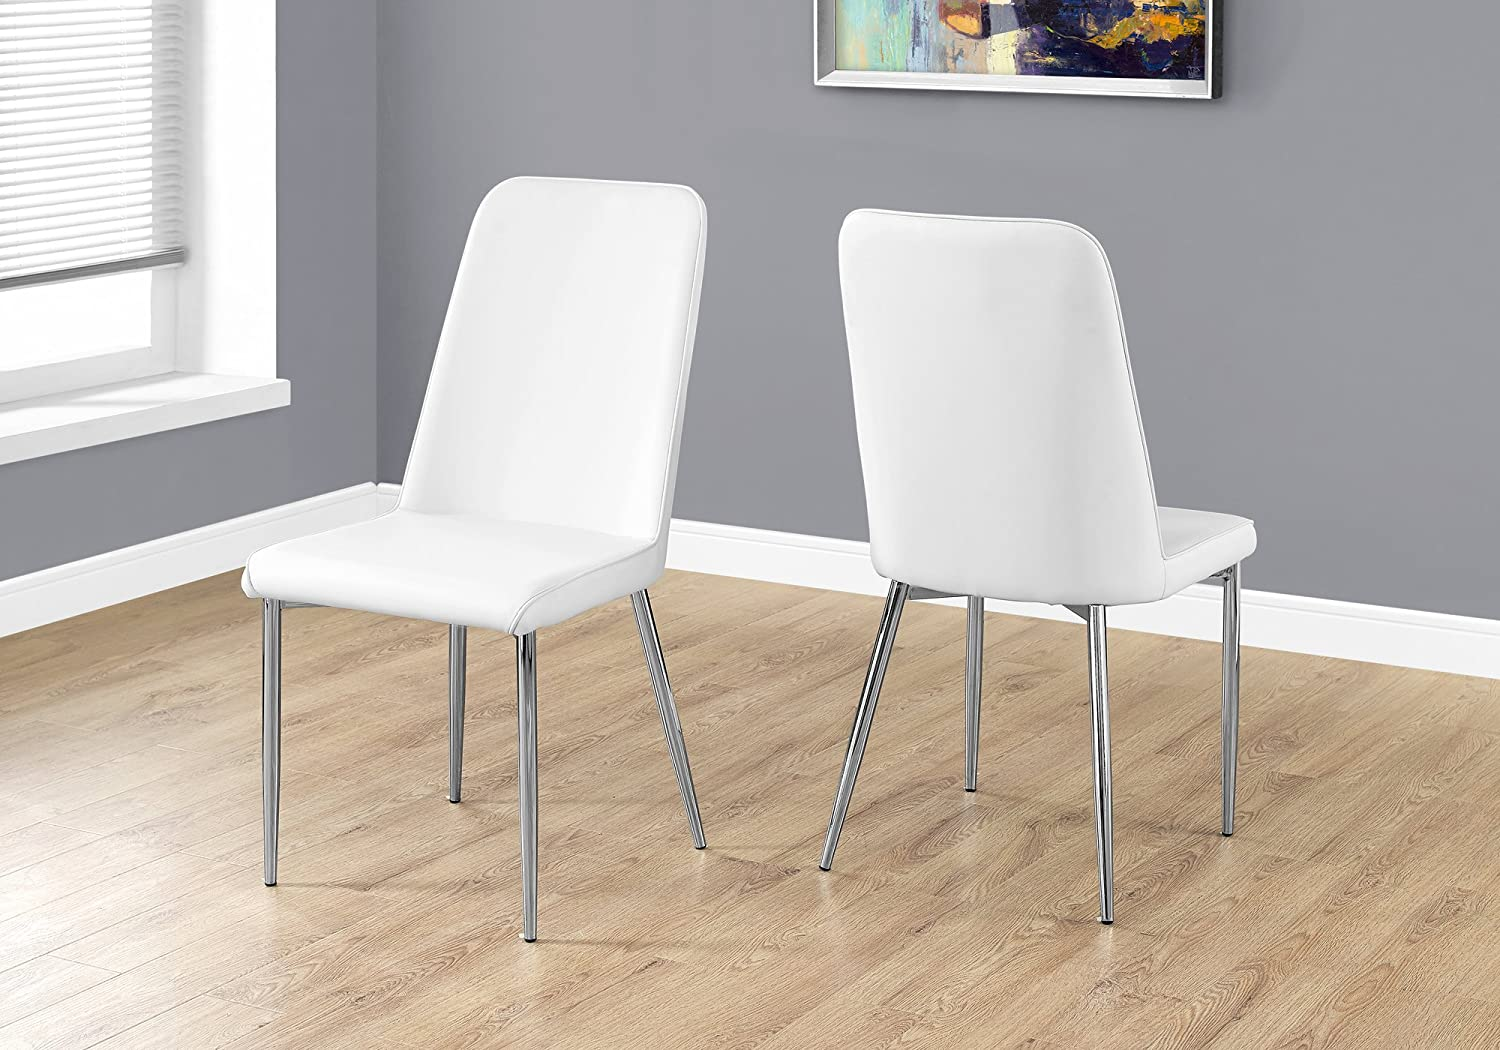 Monarch Specialties I 2 Piece Dining CHAIR-2PCS Leather-Look Chrome, 18 L x 16.5 D x 37 H, White